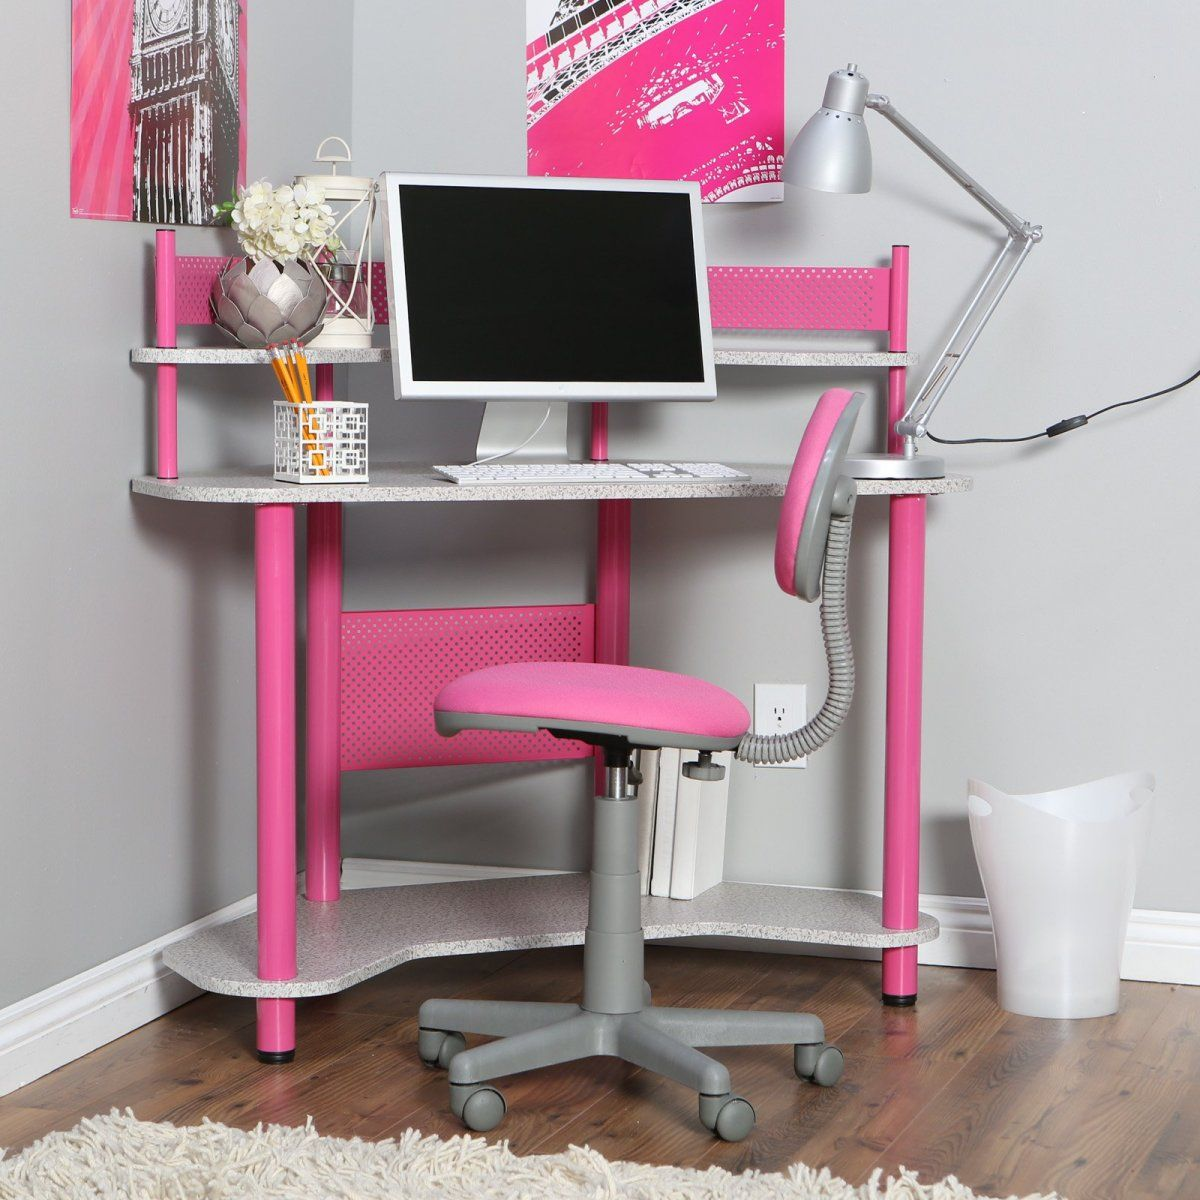 girls computer corner desks furniture for girl bedroom design ideas with pink and silver desk - Desk Chairs For Teens